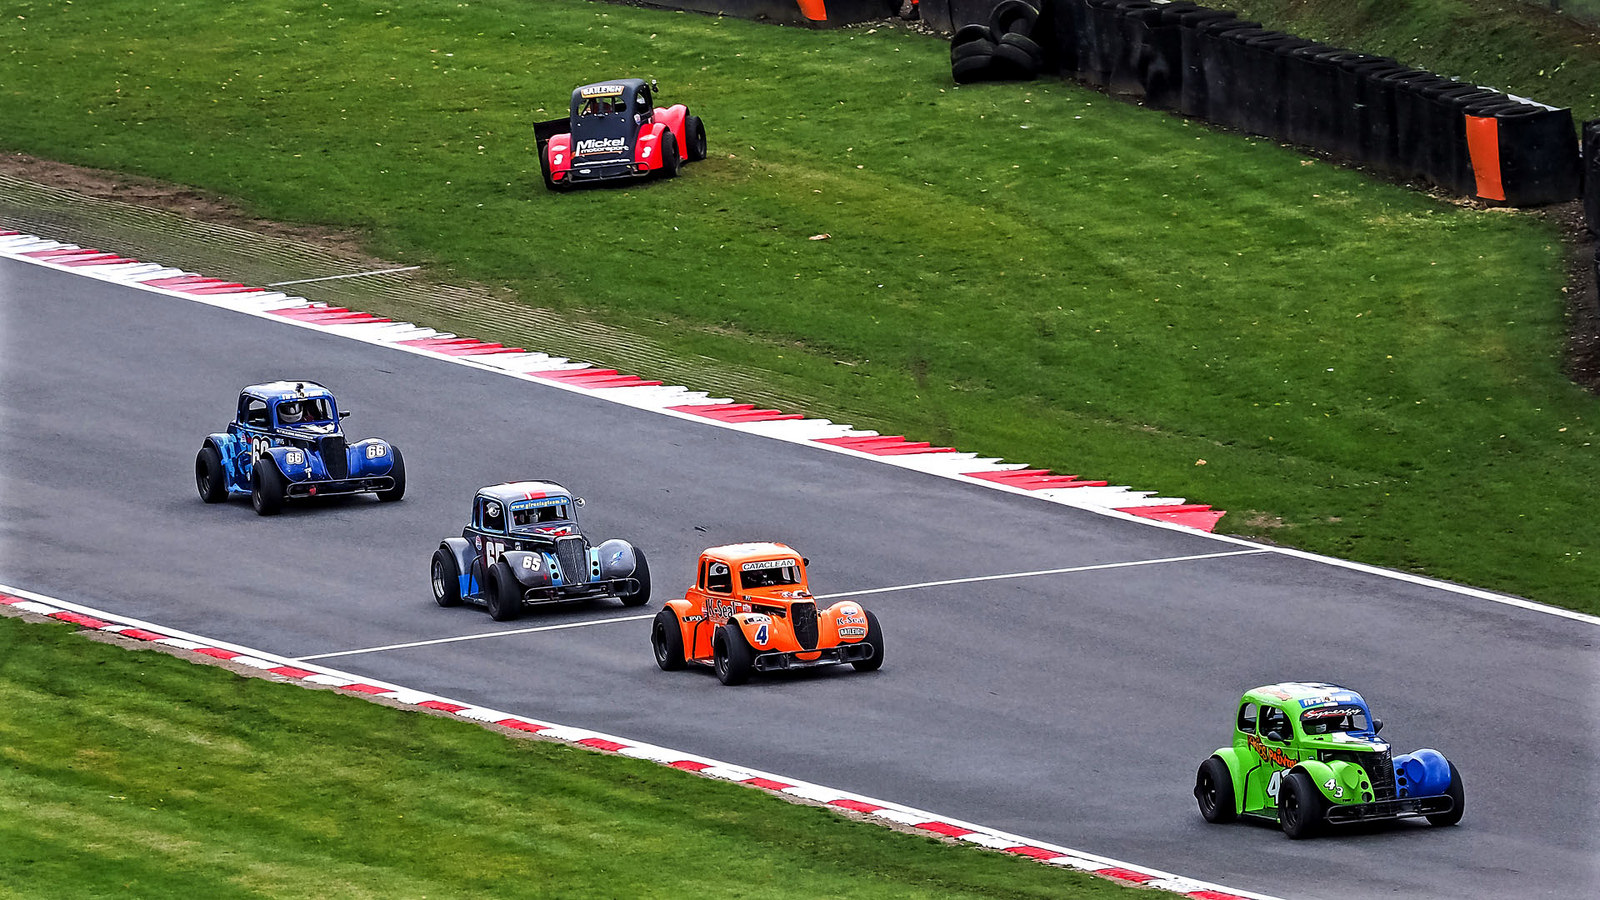 Mickel Motorsport Lifts Three 2016 UK Titles at Brands Hatch Gallery Image 2